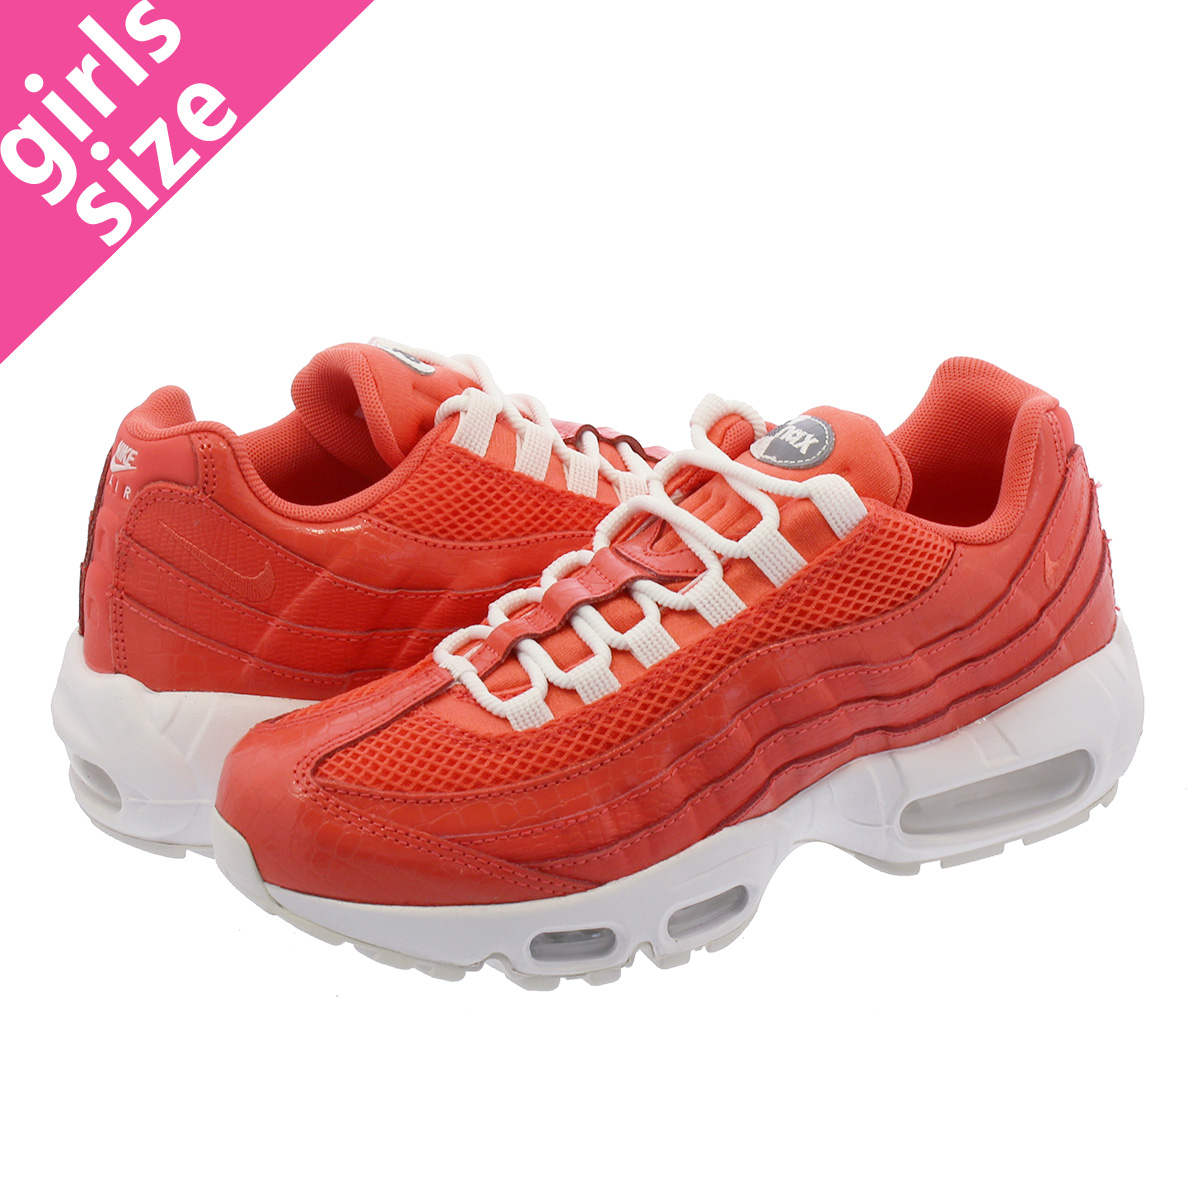 LOWTEX BIG SMALL SHOP: NIKE WMNS AIR MAX 95 SE PRM Nike